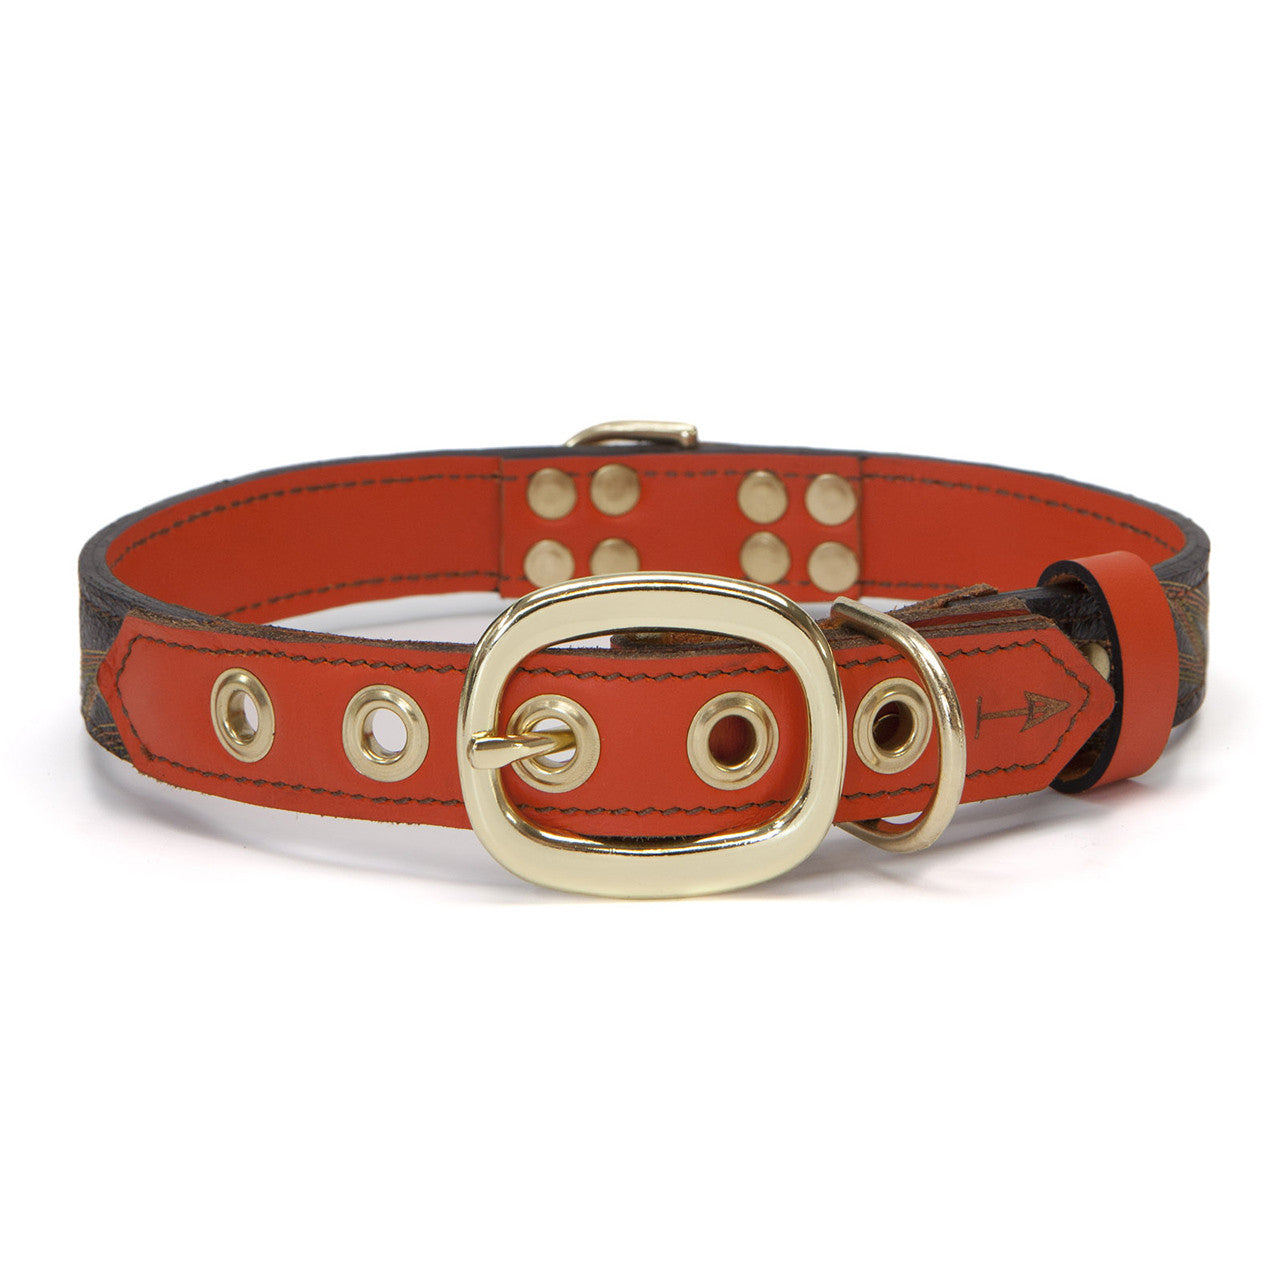 Orange Dog Collar with Brown Leather + Orange Spike Stitching (back view)